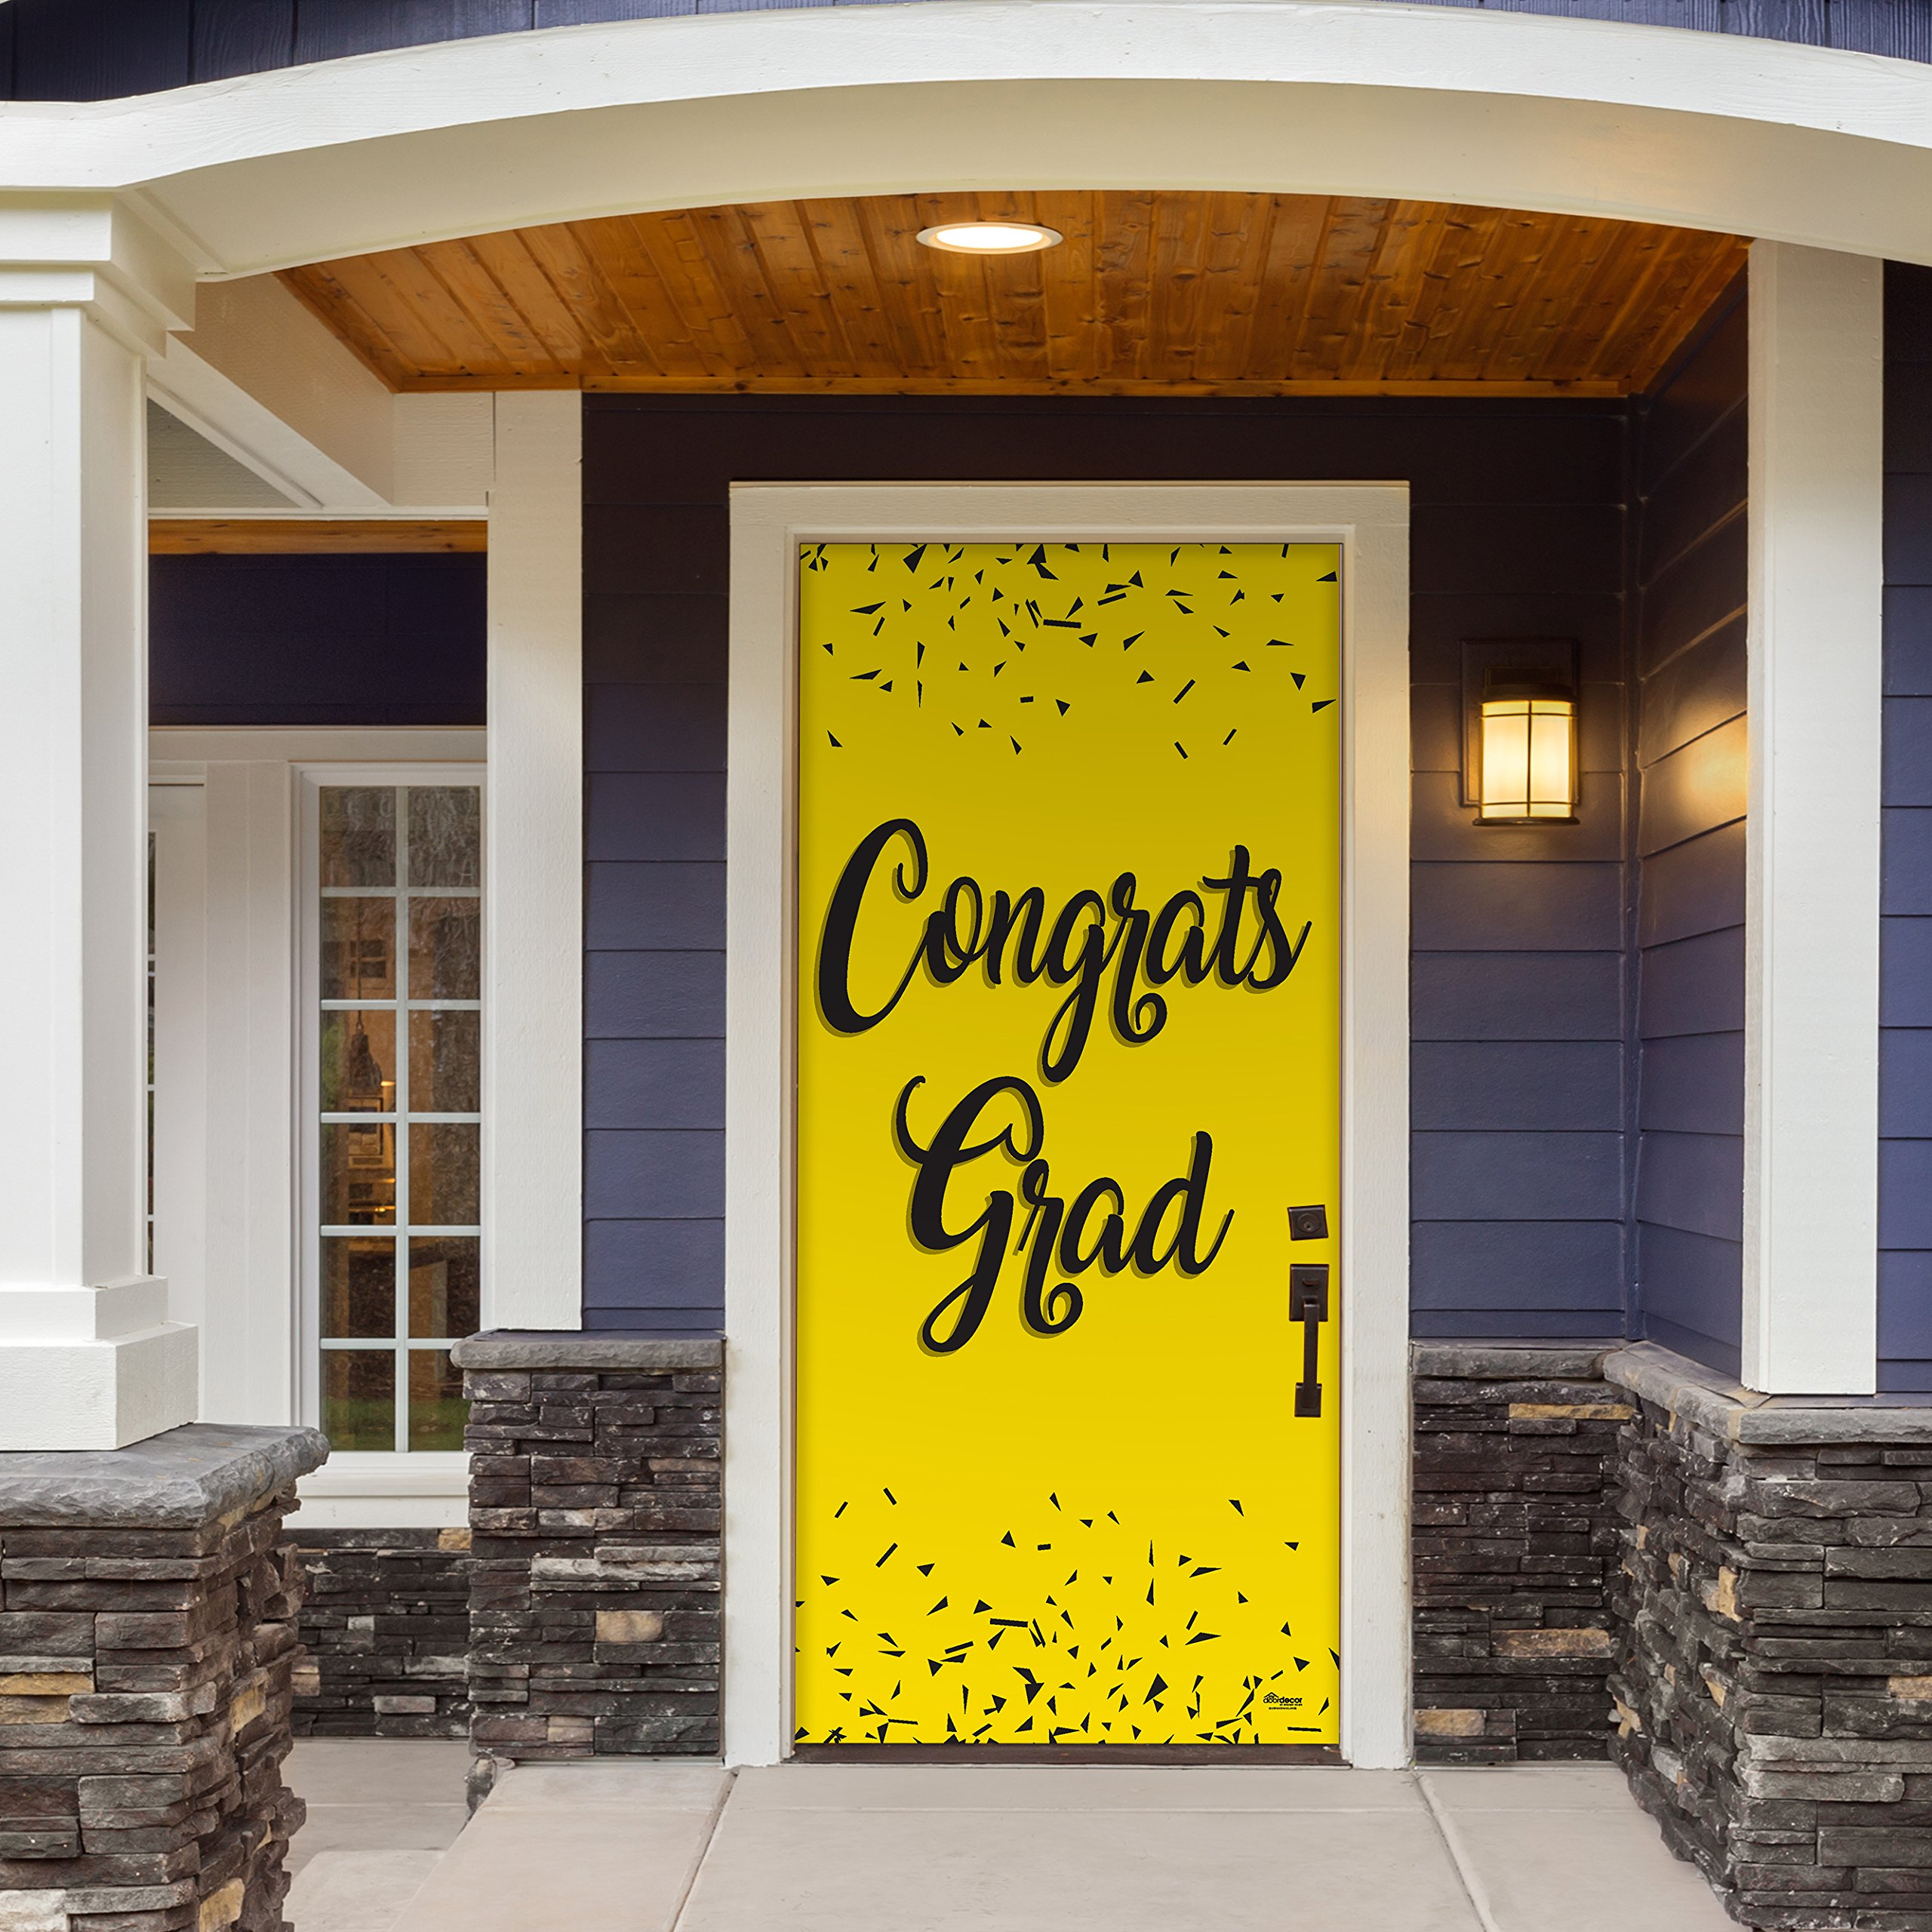 Victory Corps Congrats Grad Yellow - Outdoor GRADUATION Garage Door Banner Mural Sign Décor 36'' x 80'' One Size Fits All Front Door Car Garage -The Original Holiday Front Door Banner Decor